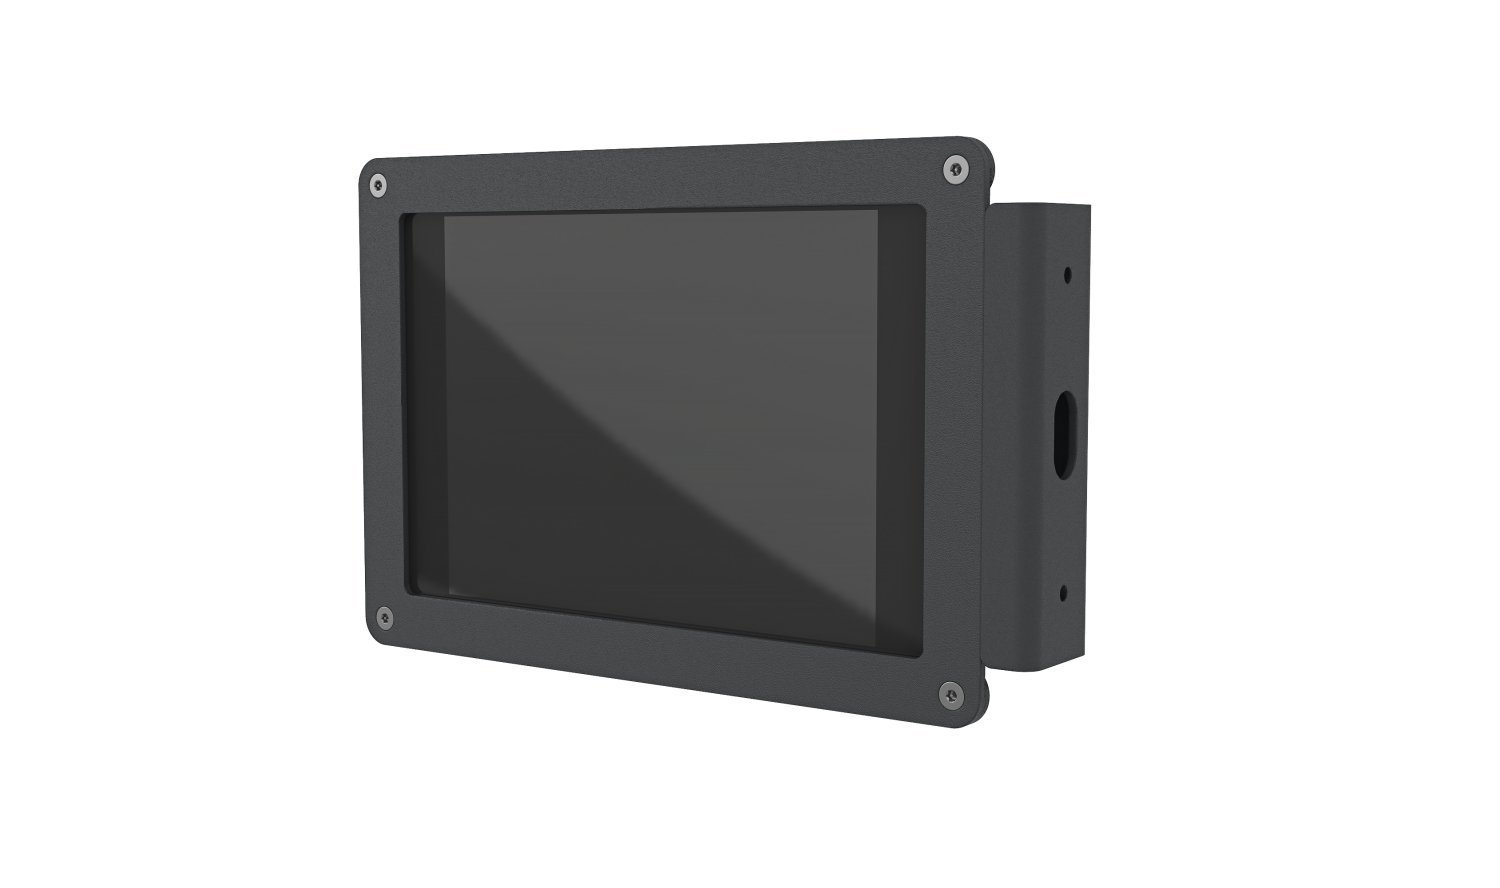 Kensington WindFall Frame for Conference Rooms for iPad mini 4/3/2/1 by Heckler Design (K67949US) by Kensington (Image #1)